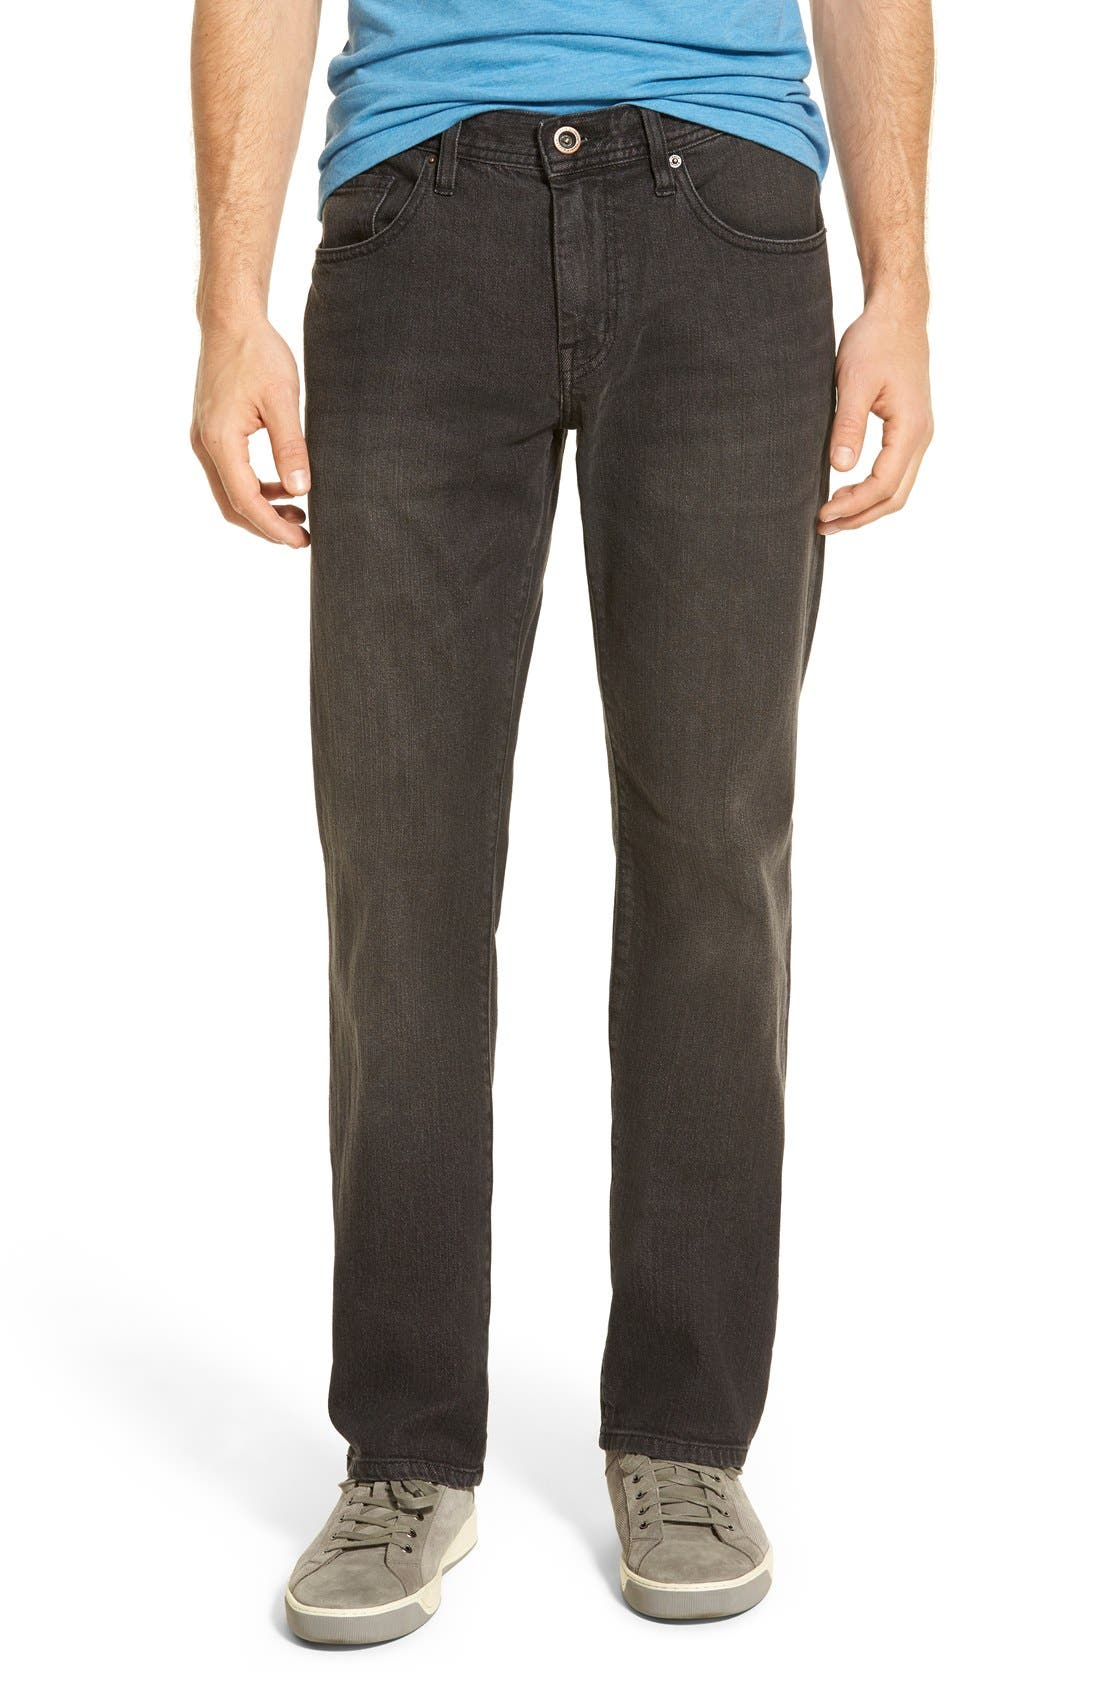 'Duke' Relaxed Fit Jeans,                             Main thumbnail 1, color,                             002